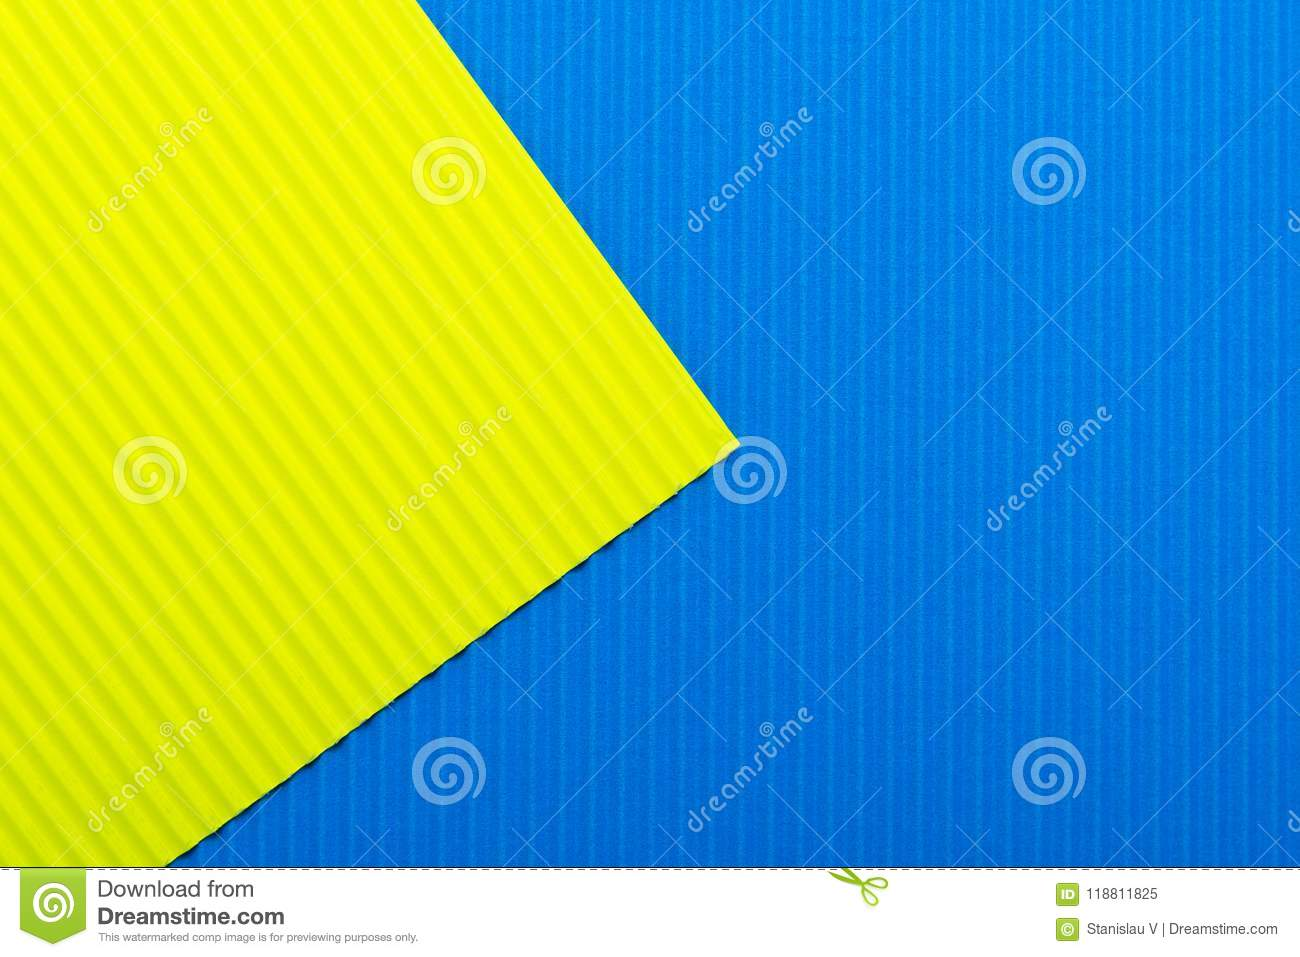 Blue and yellow color paper texture background. Trend colors, geometric paper background.